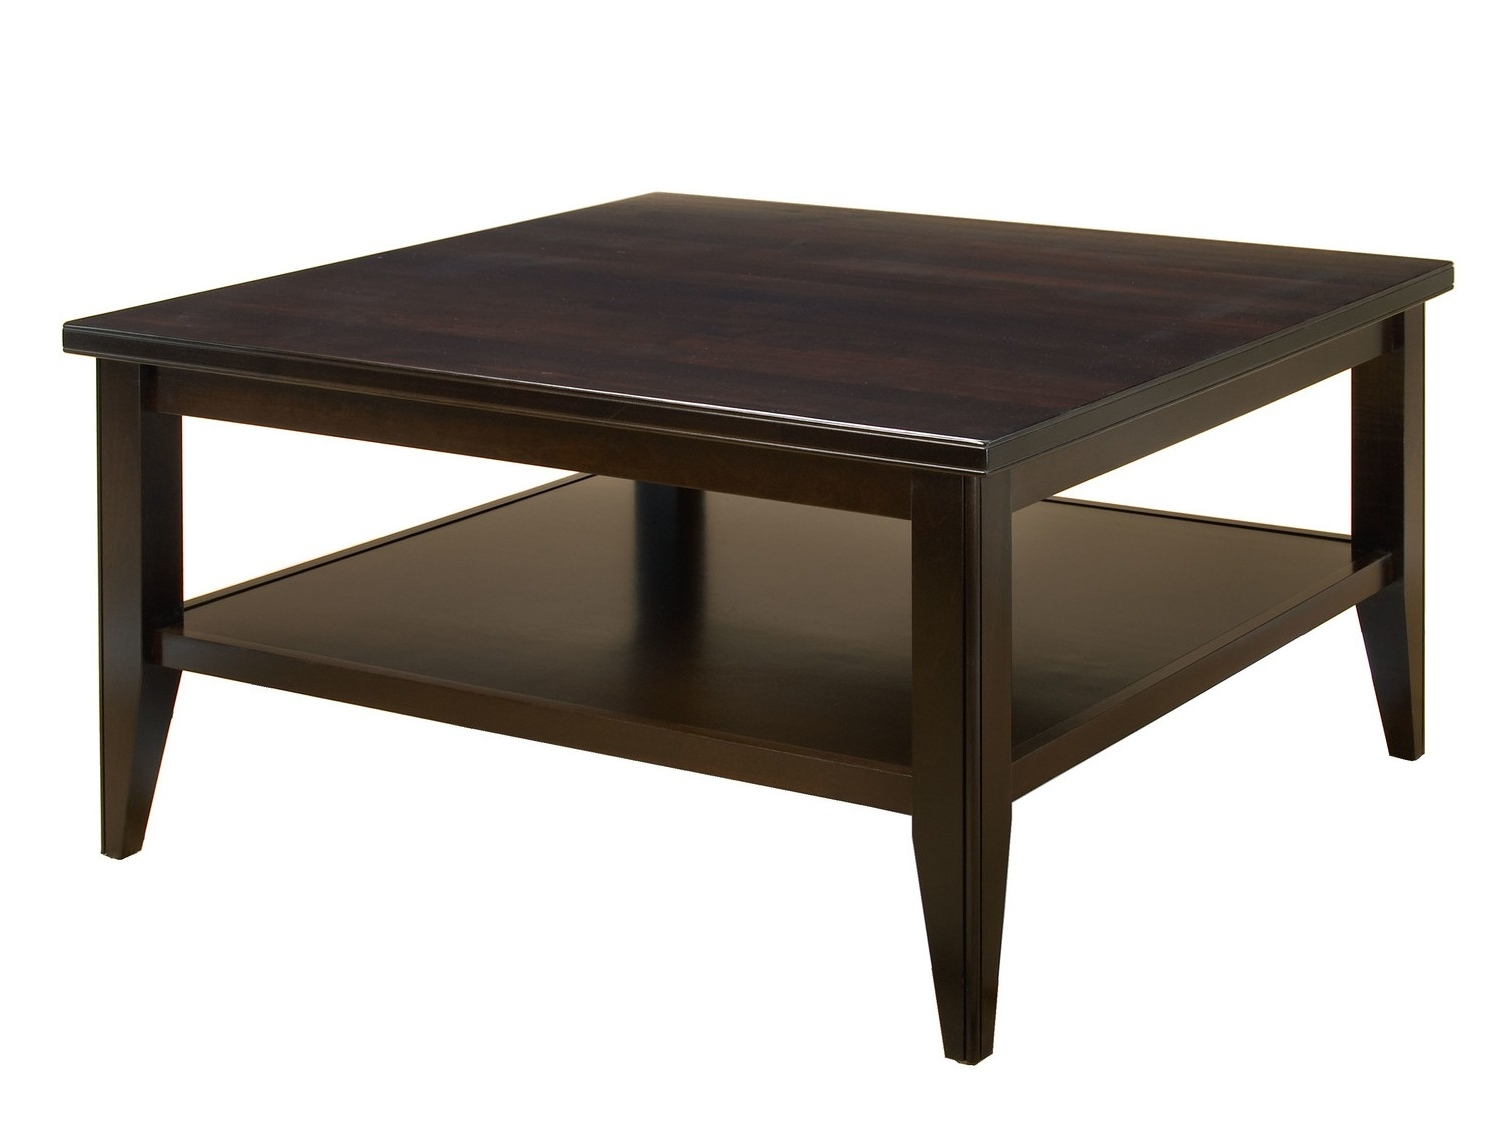 Elegant Traditional Coffee Table With Coffee Table Beautiful Of With Regard To Latest Traditional Coffee Tables (View 5 of 20)